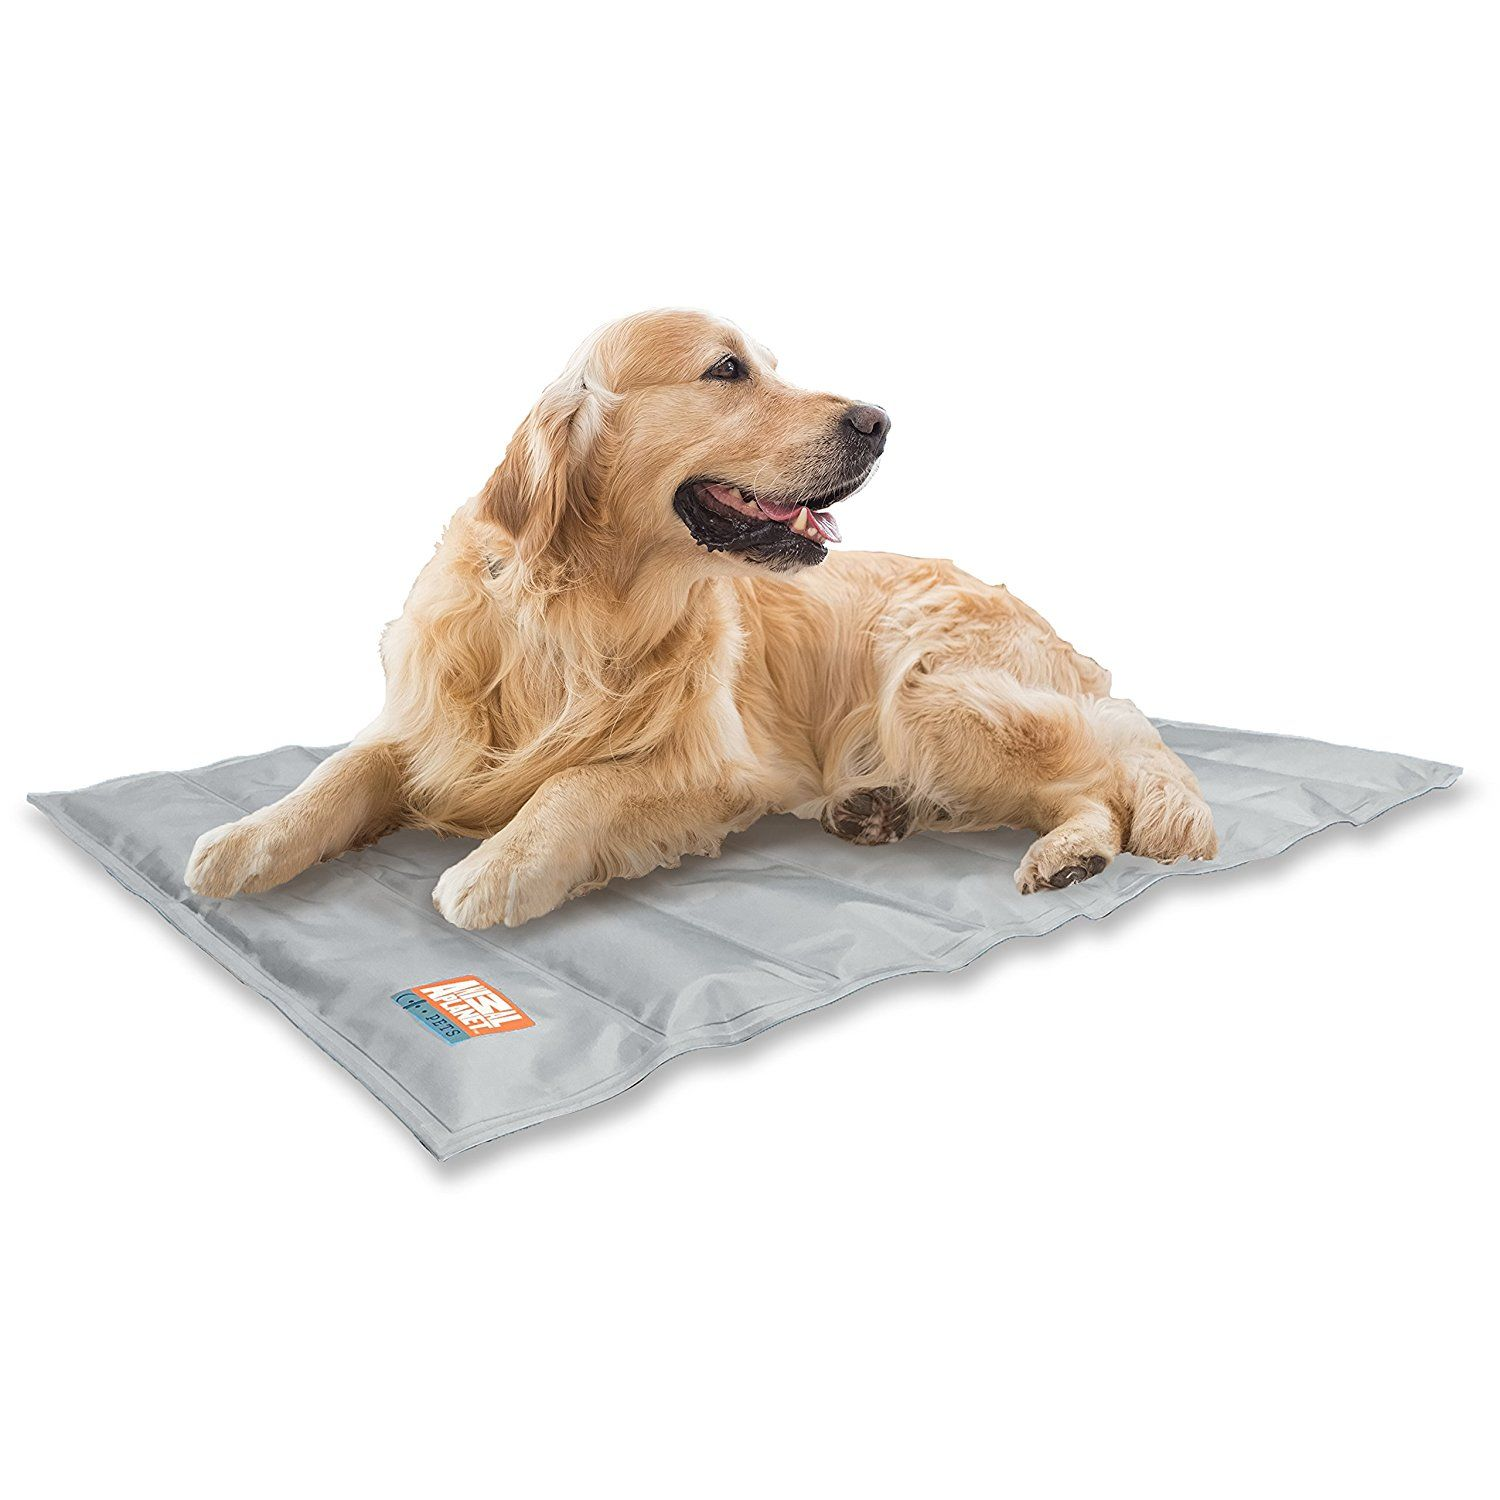 Animal Planet Cooling Gel Pet Mat 30 X 24 Grey Click Image To Review More Details This Is An Affiliate Link And I Rece Pets Pet Cooling Mat Cool Dog Beds